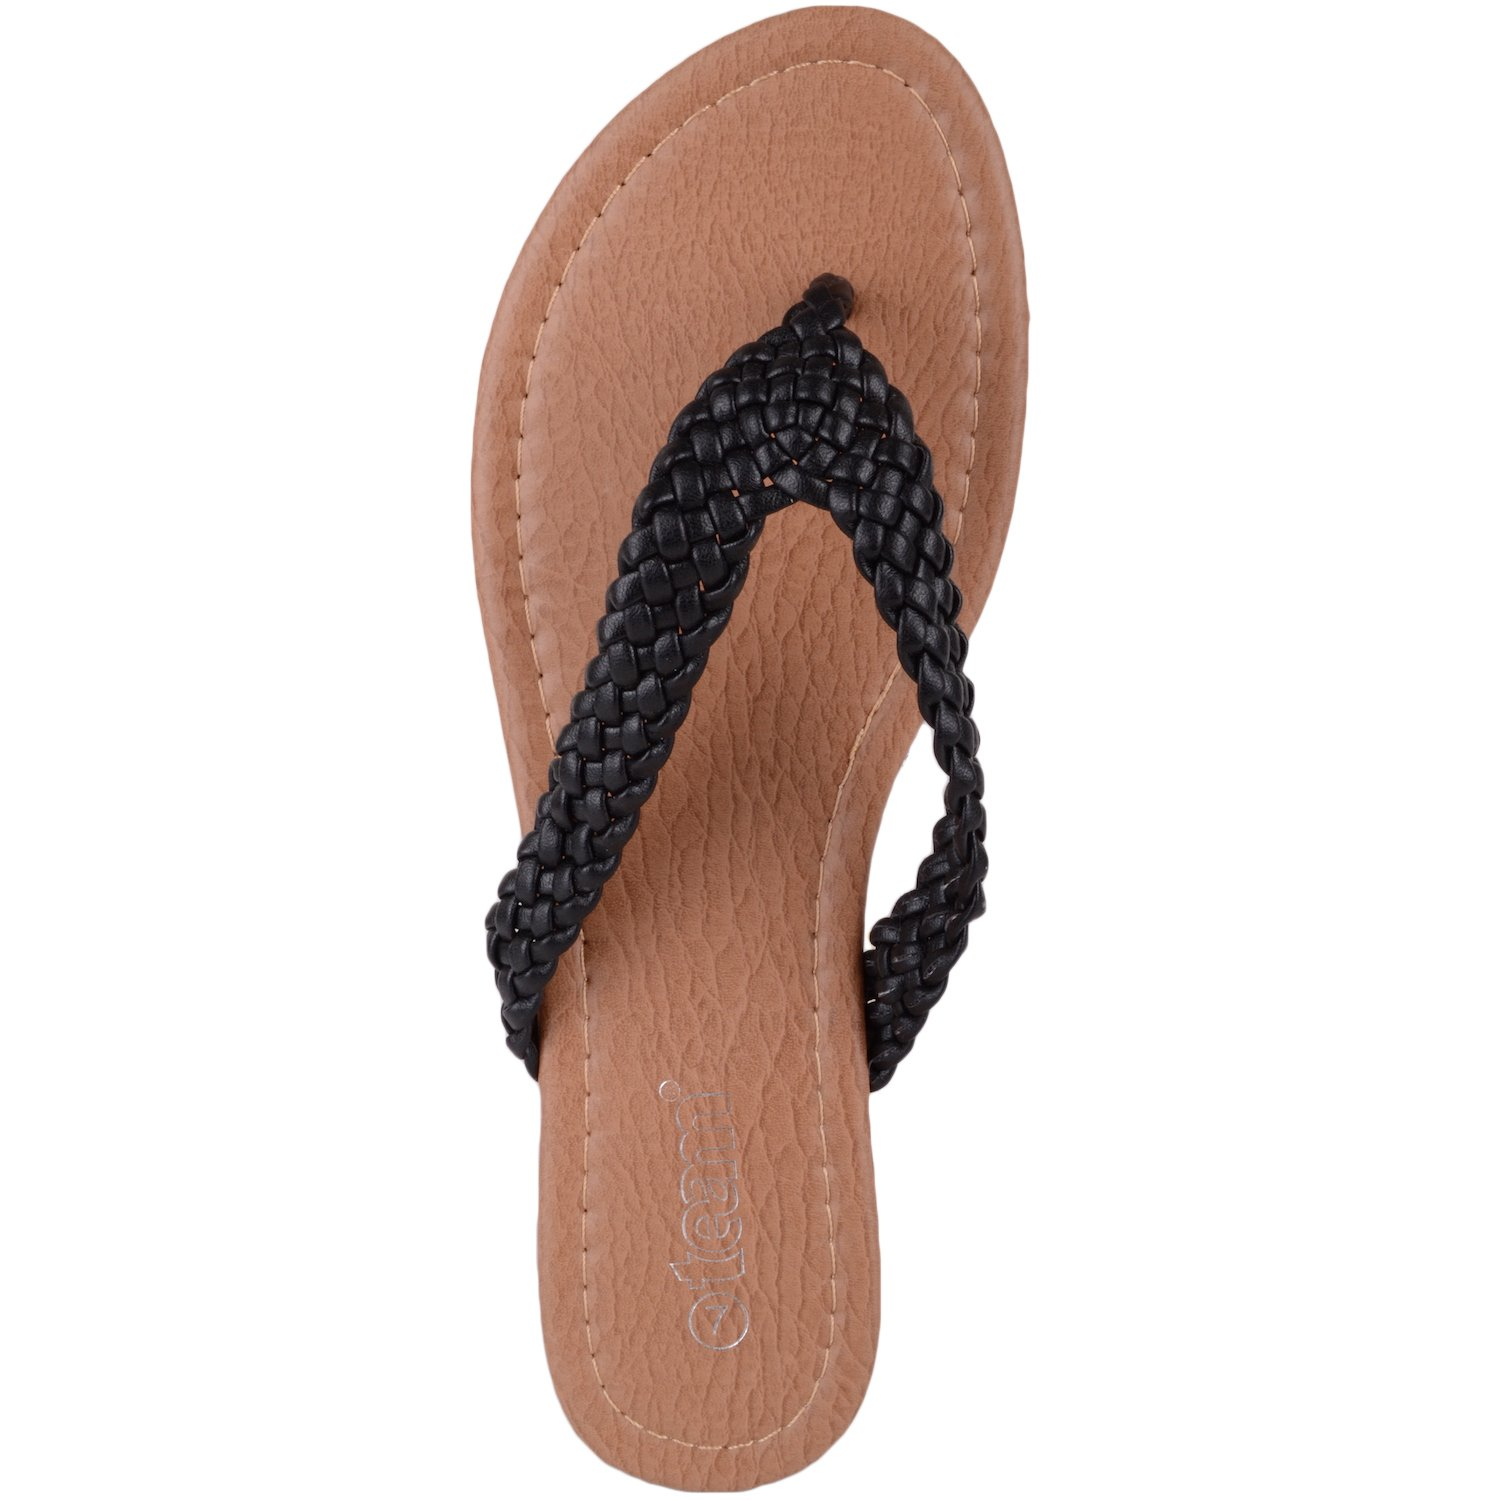 9289cb7fd Absolute Footwear Womens Summer Holiday Beach Sandals Flip Flips Toe Posts  Shoes - Black - UK 3  Amazon.co.uk  Shoes   Bags